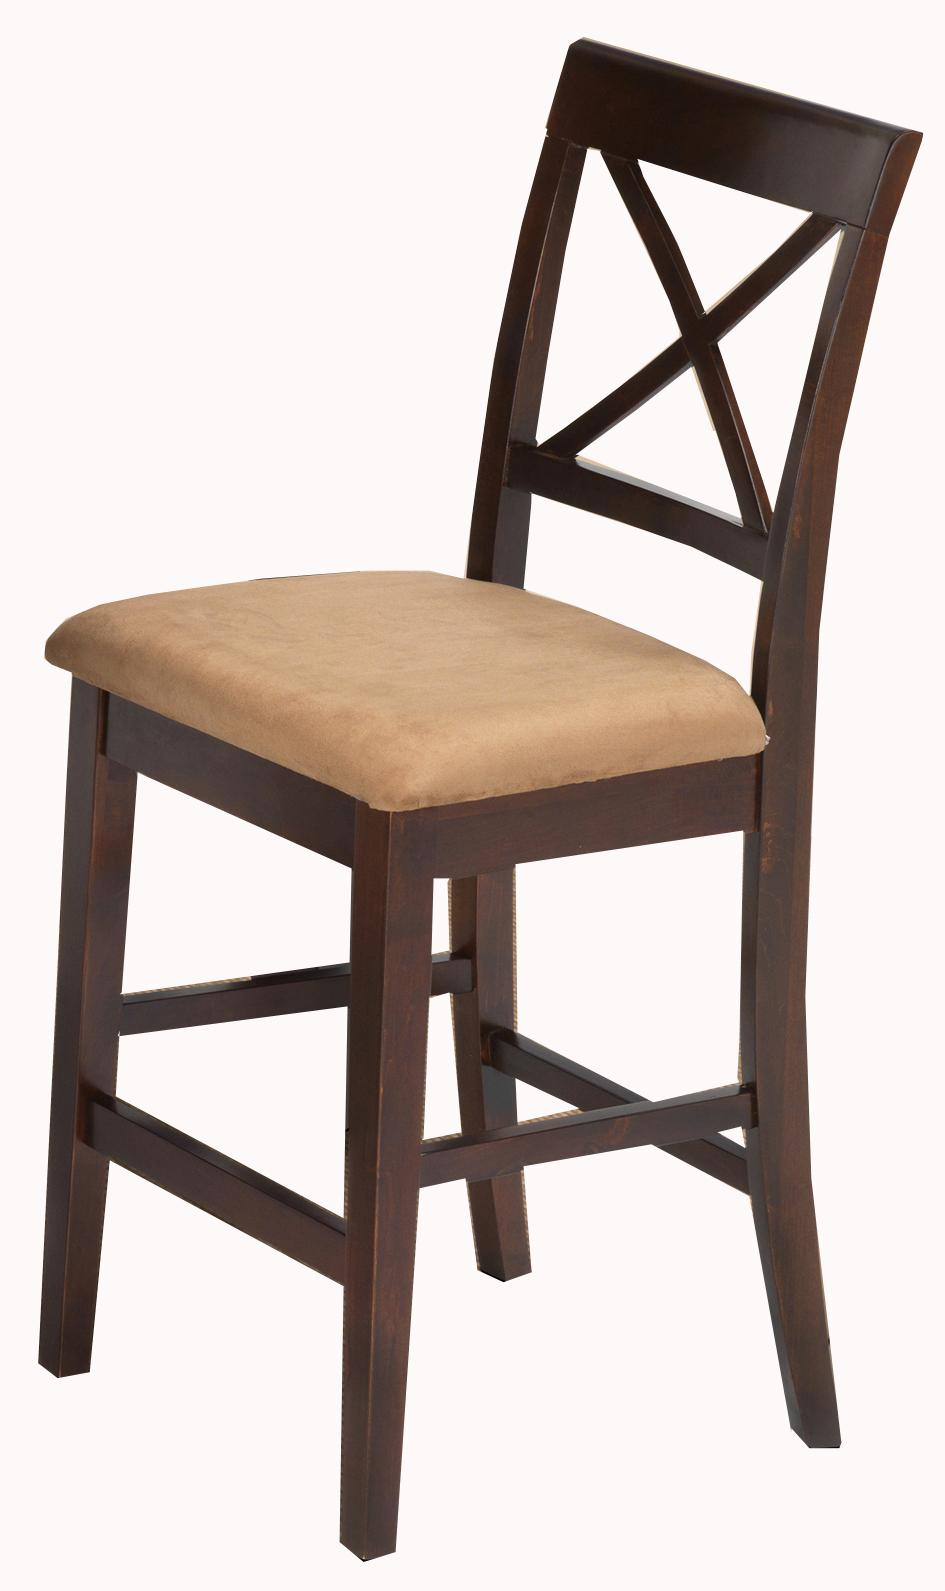 New Classic Crosswinds Counter Chair - Item Number: 04-1712-020